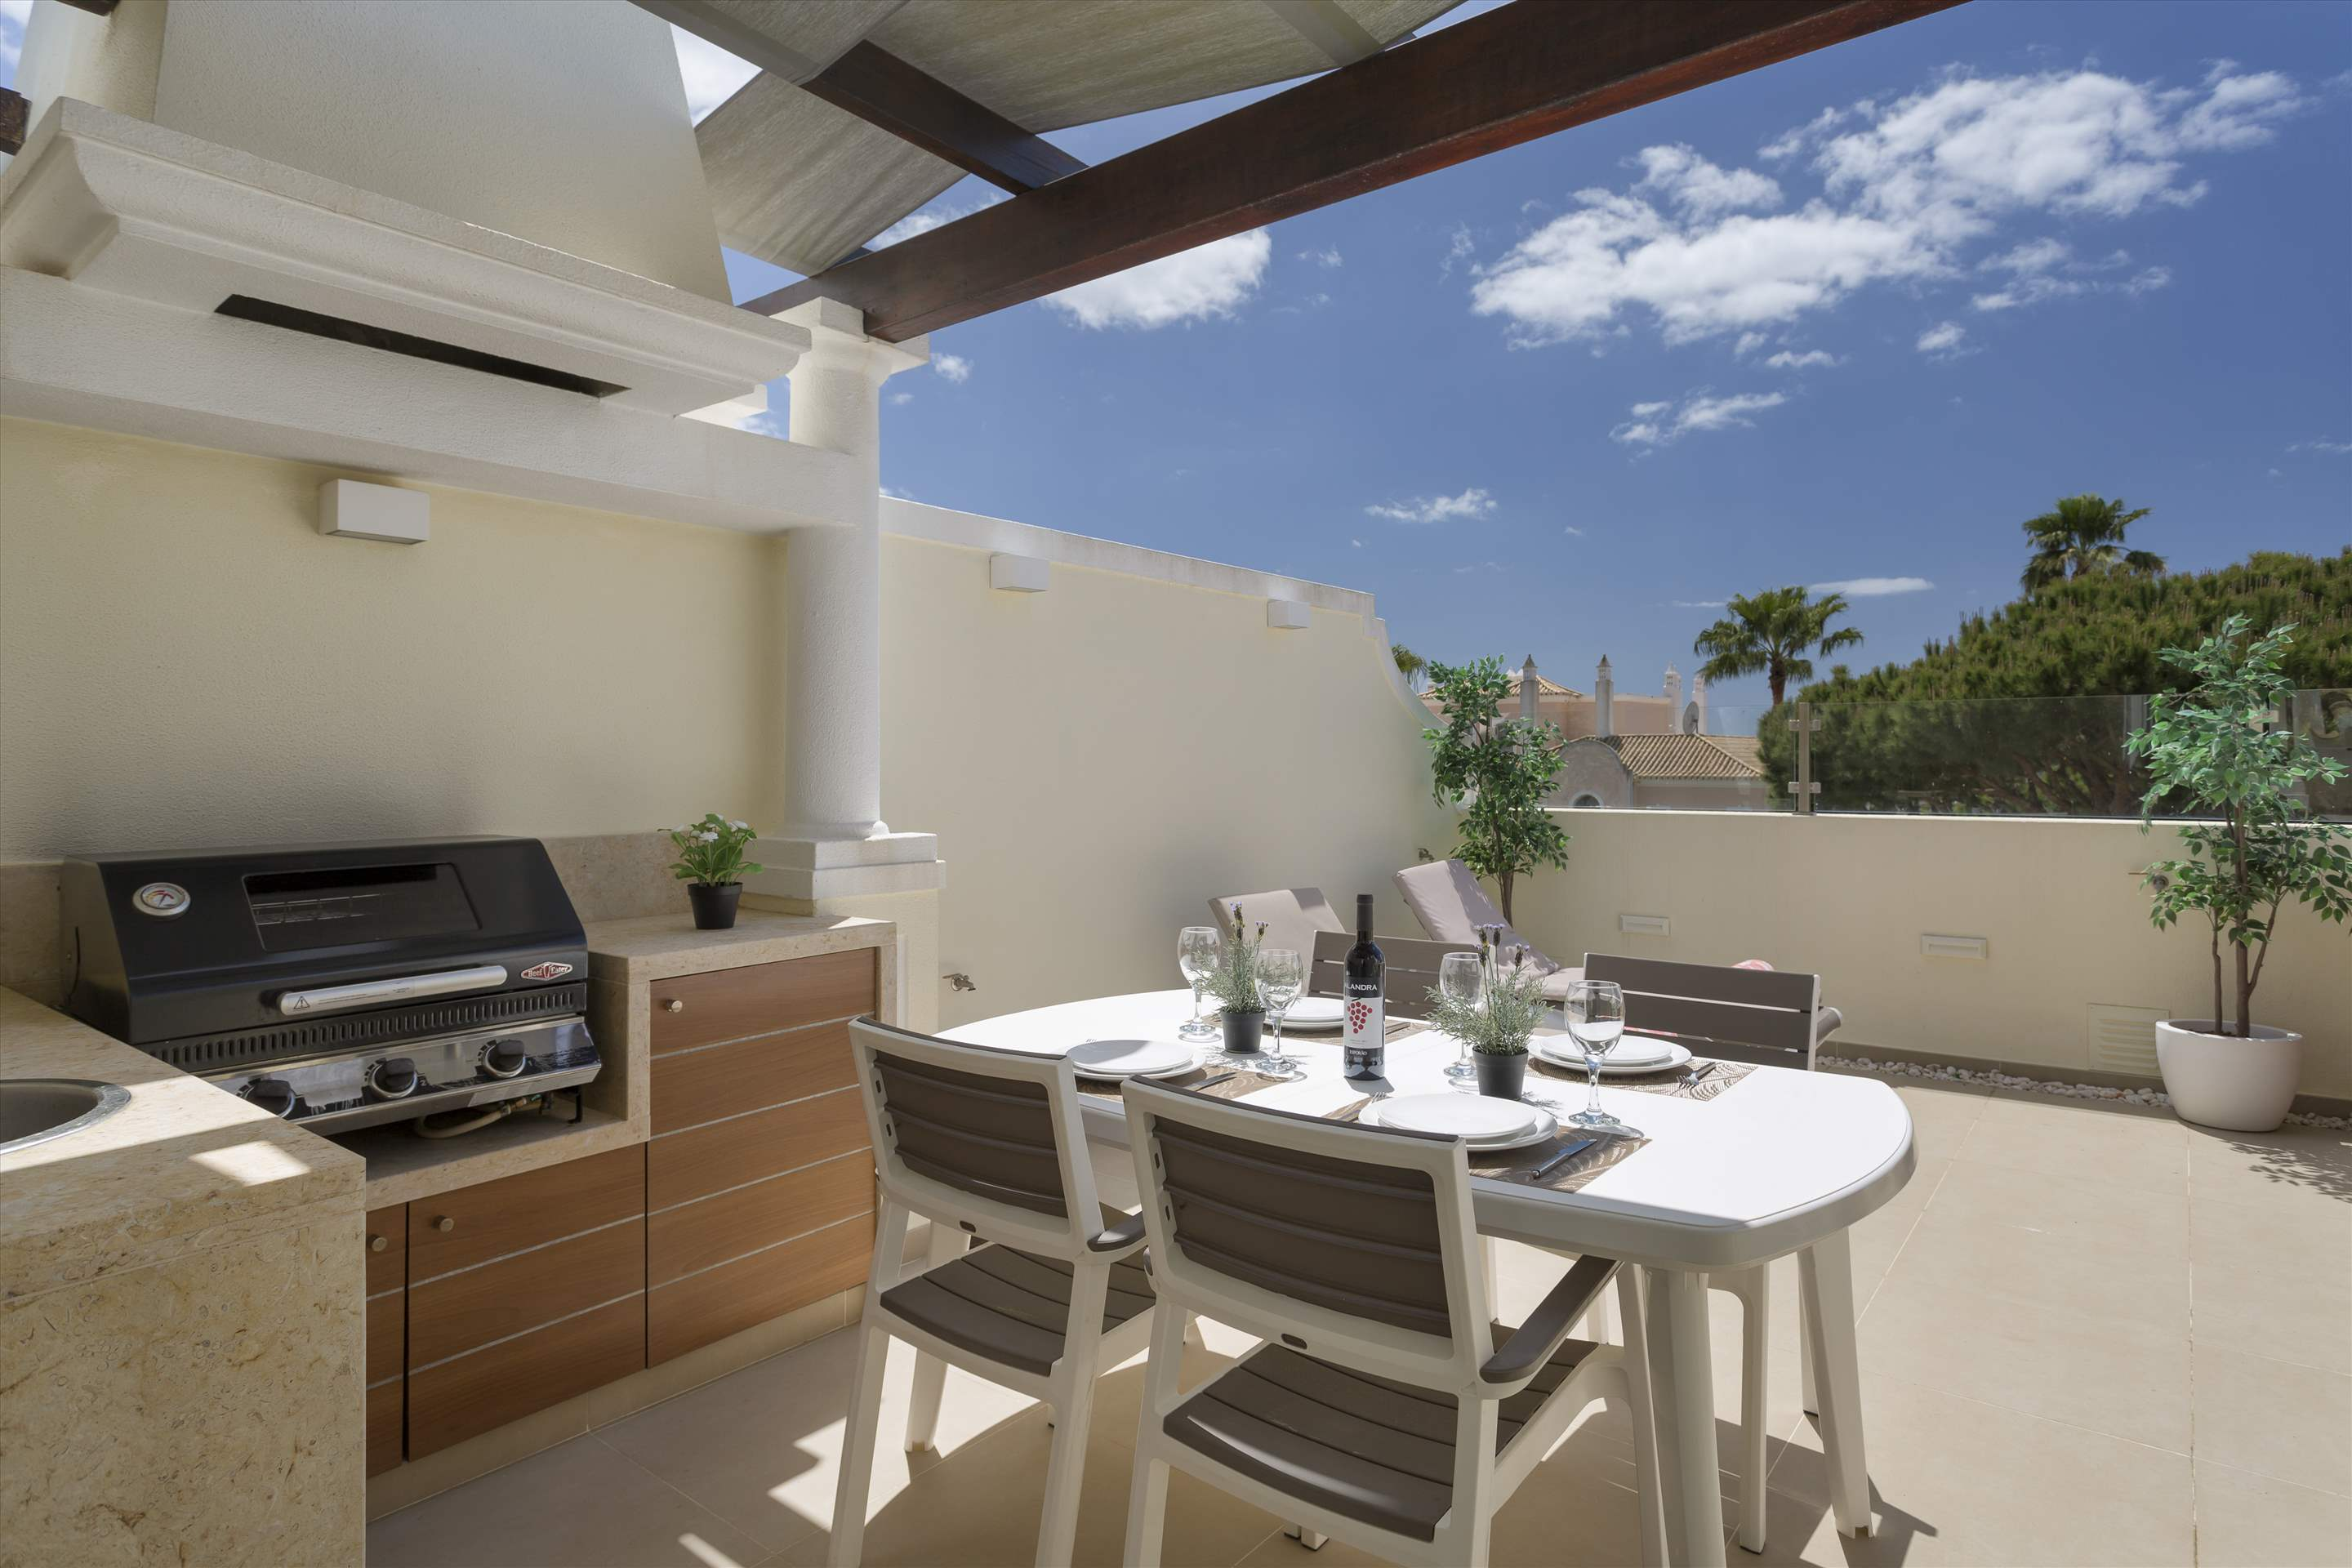 Apartment Jacinda, 2 bedroom apartment in Vale do Lobo, Algarve Photo #2